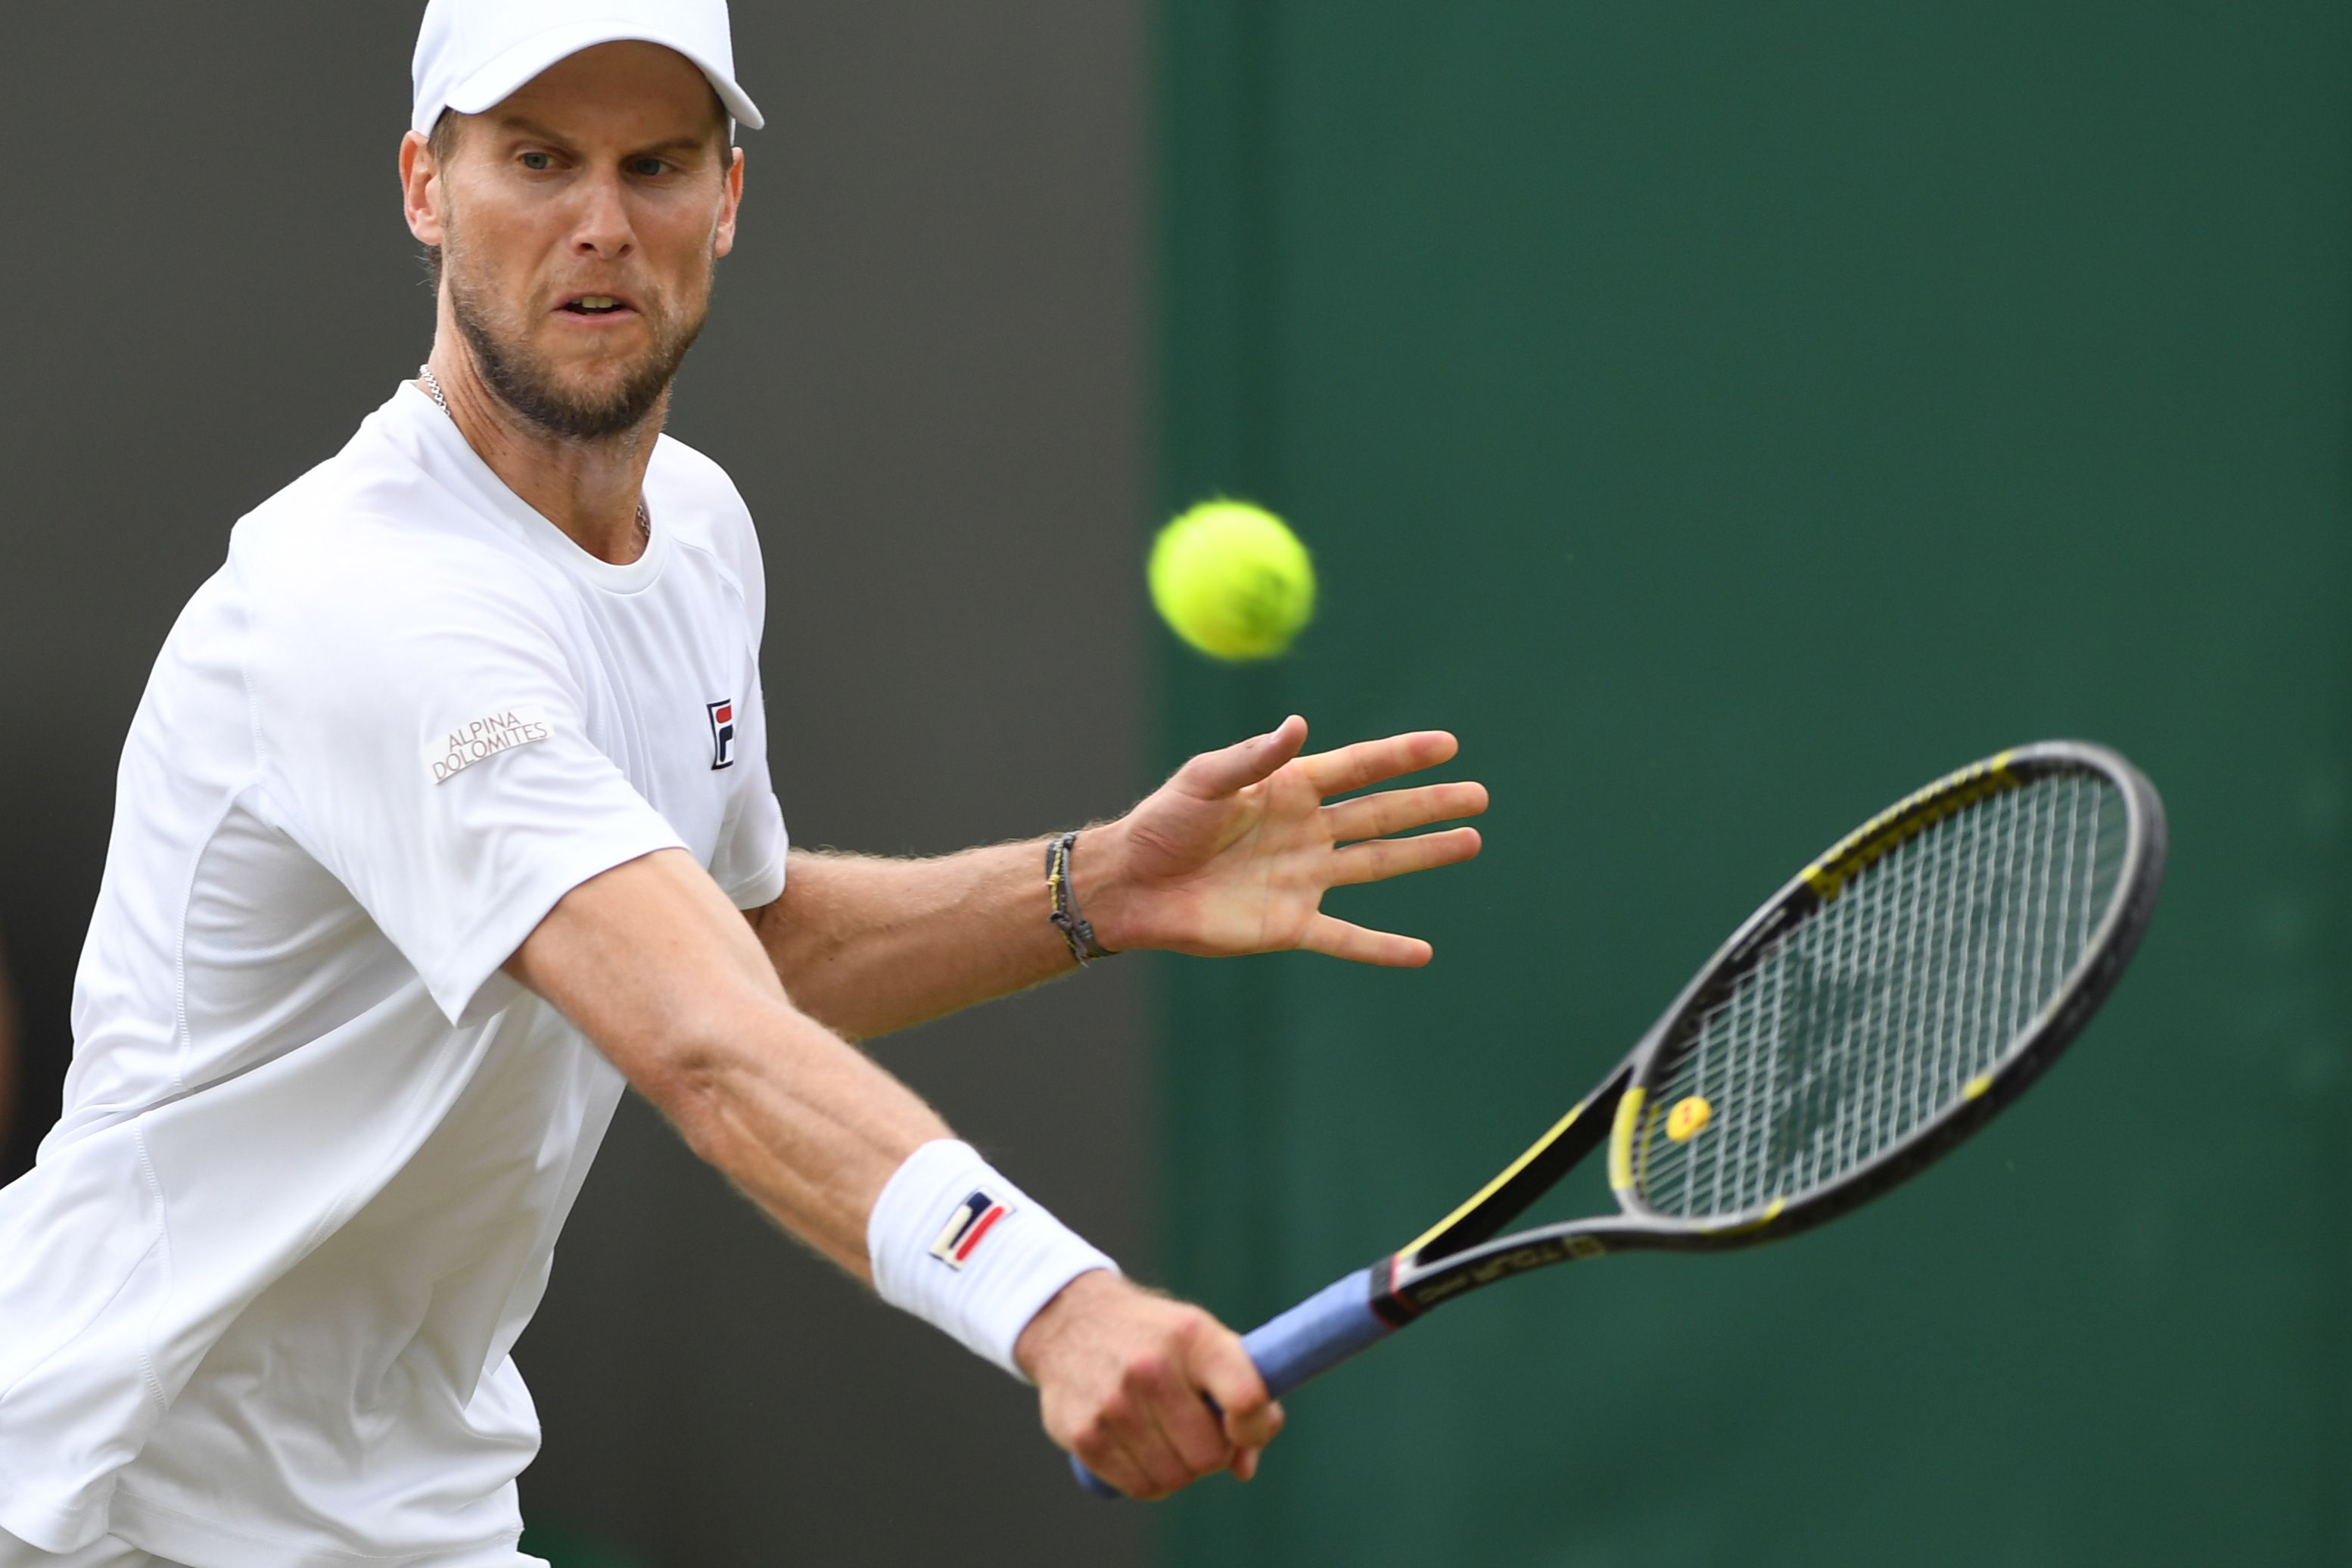 Llodra vs seppi betting tips investing in cryptocurrency 2021 best